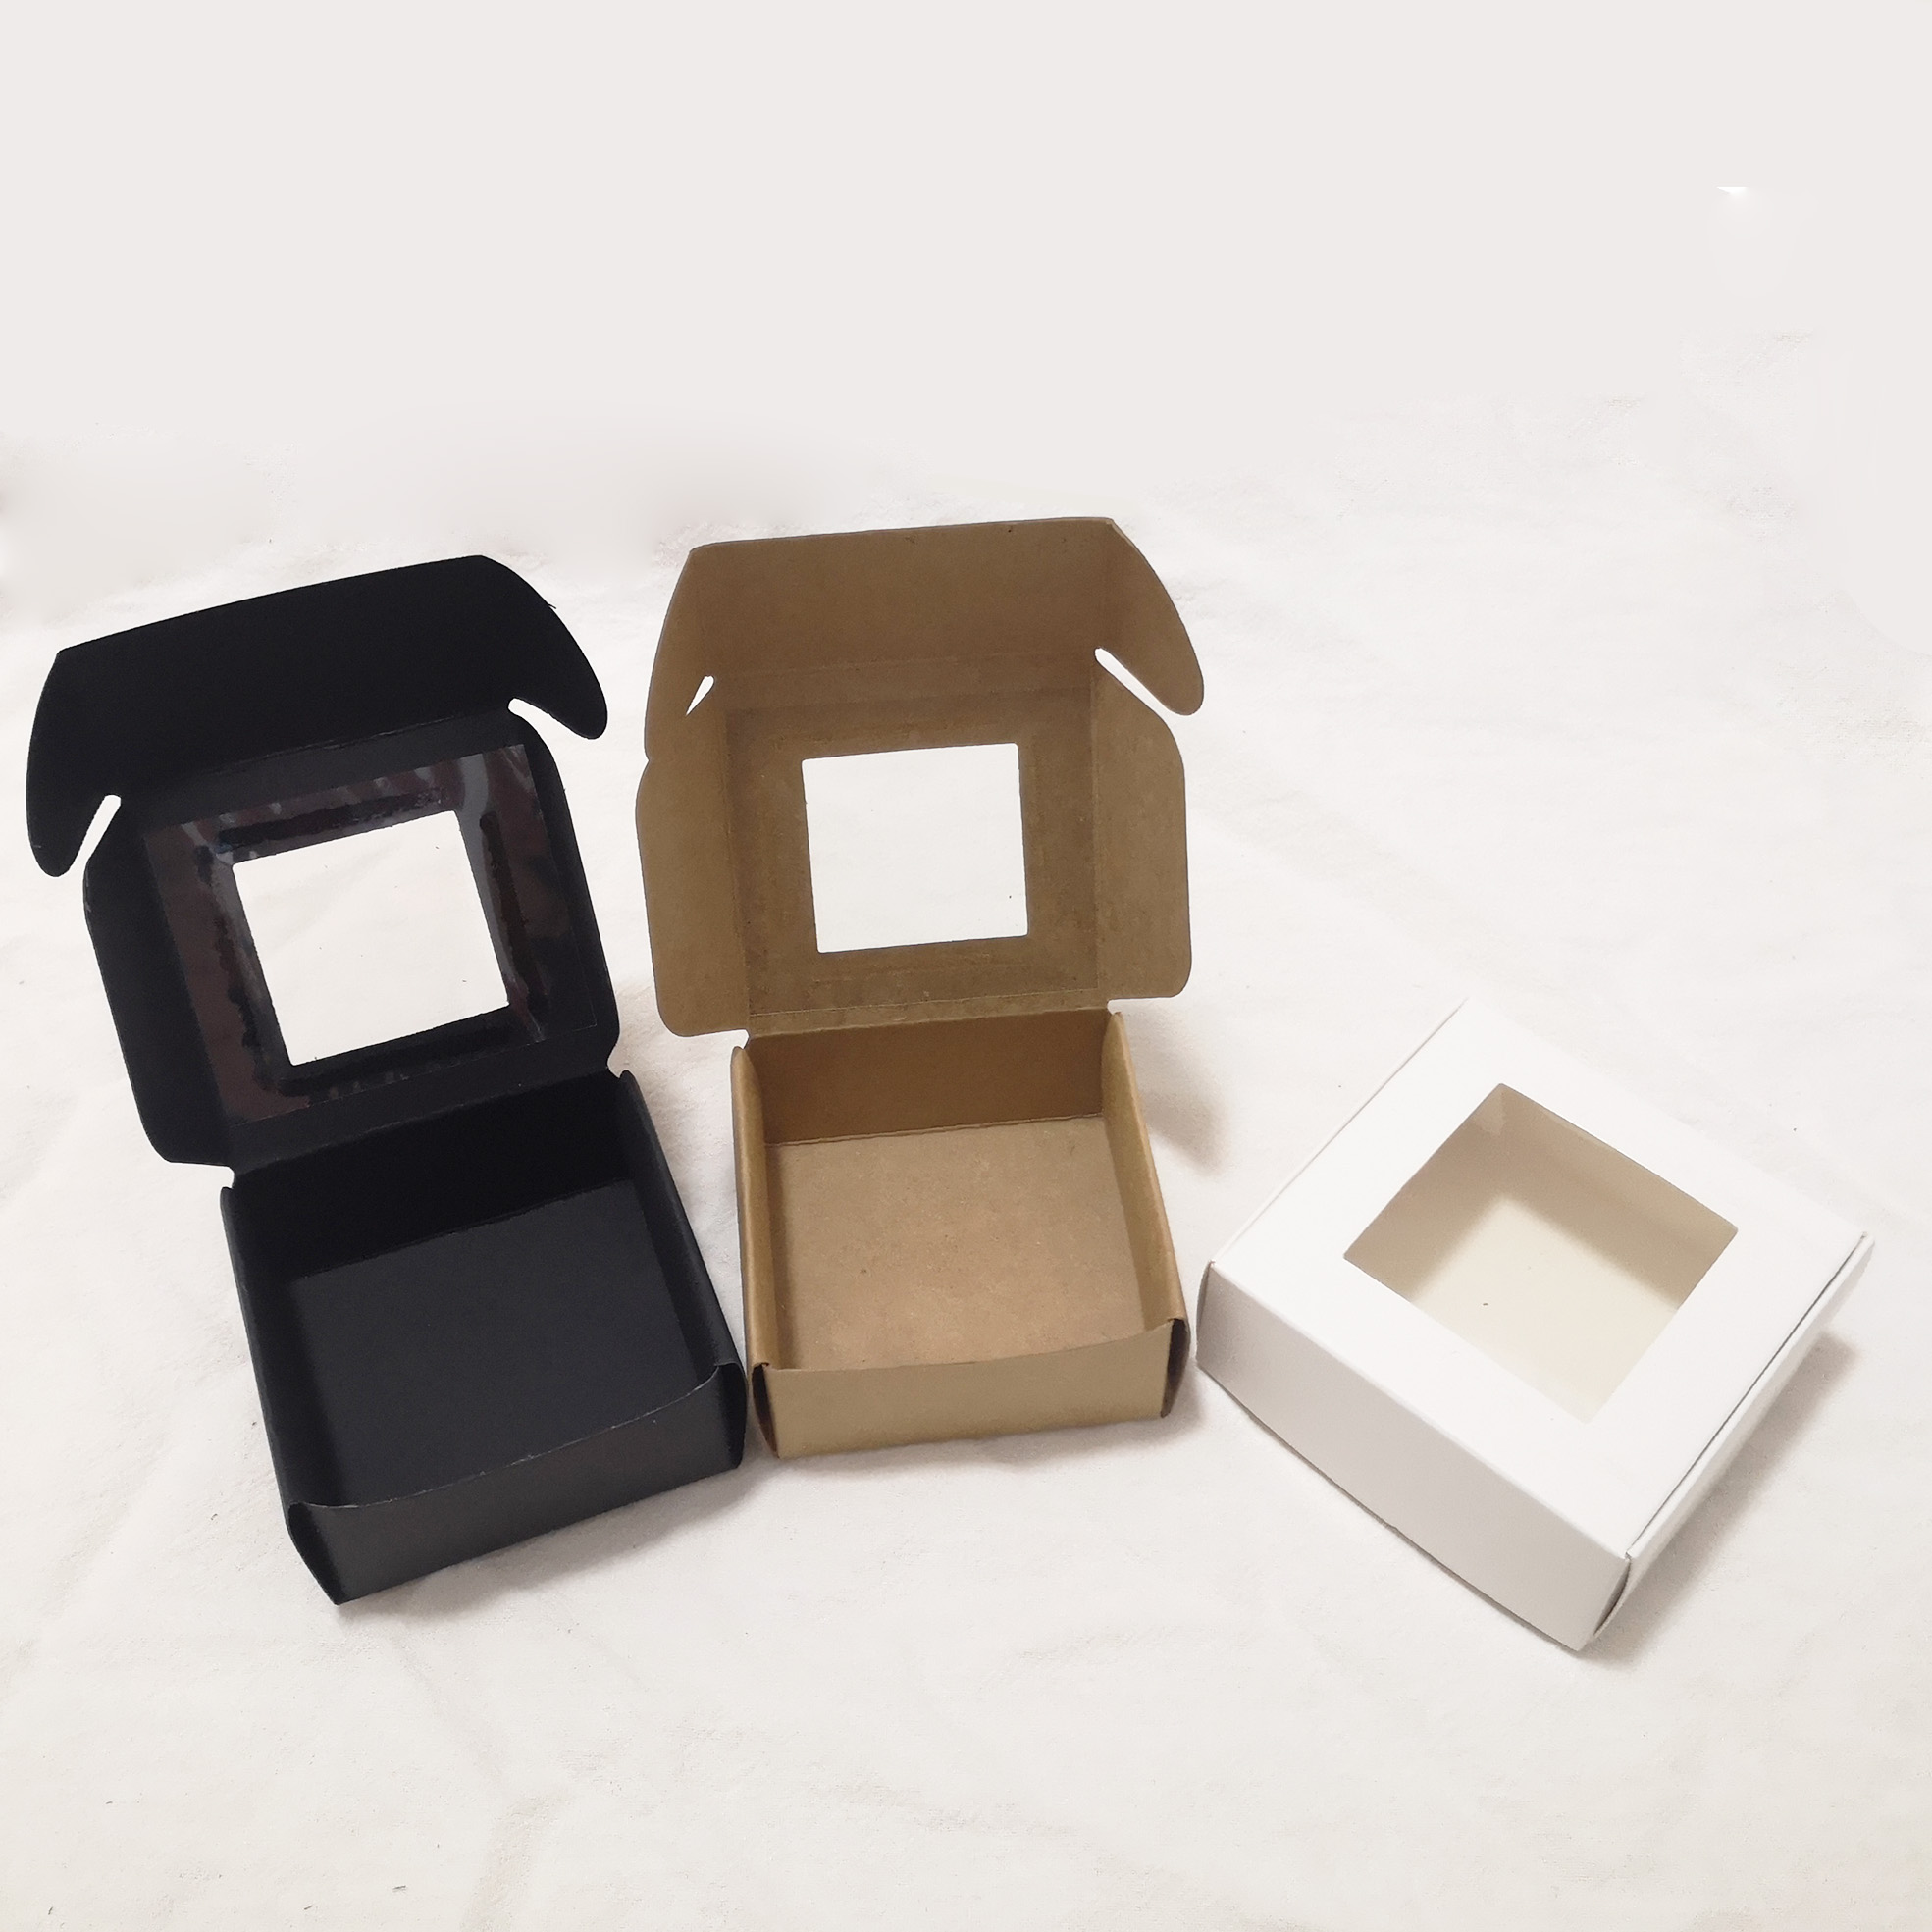 10pcs/lot Small Kraft Paper Packaging Box With Window,cardboard Handmade Soap Box,mini Personalized Craft Paper Jewelry Gift Box